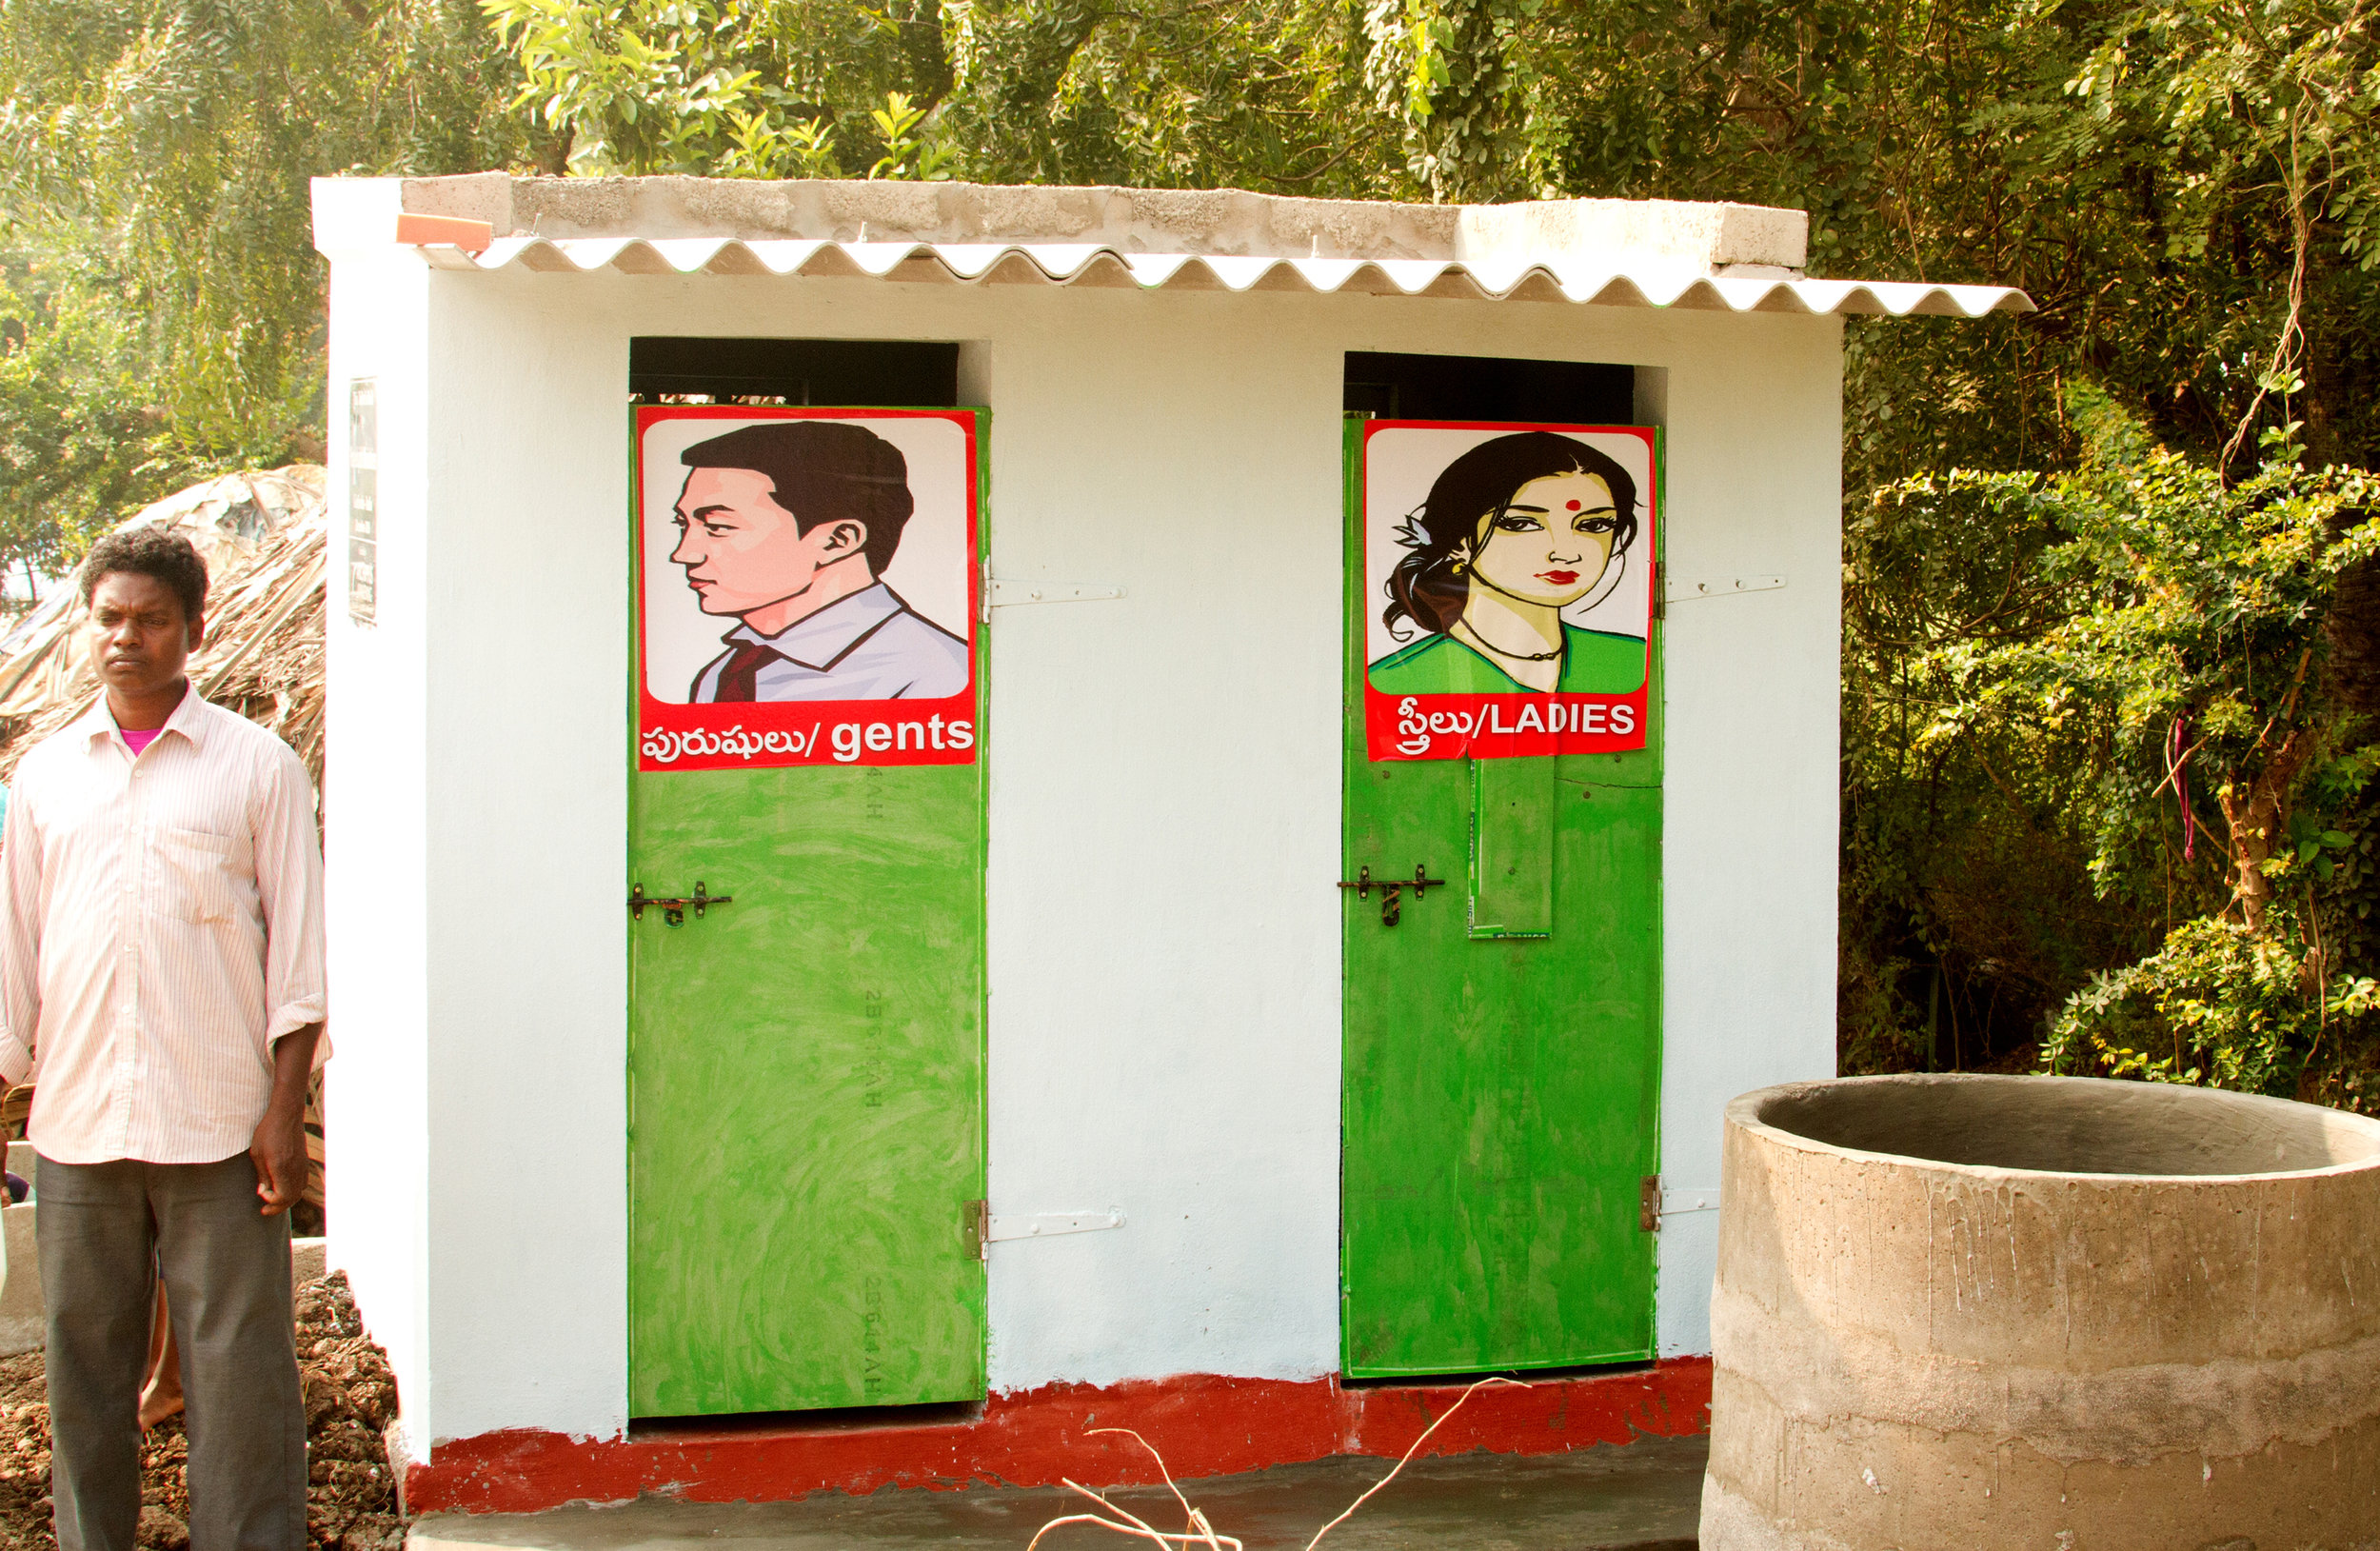 The restroom was built in one of the untouchable camps (usually 30-100 folks).